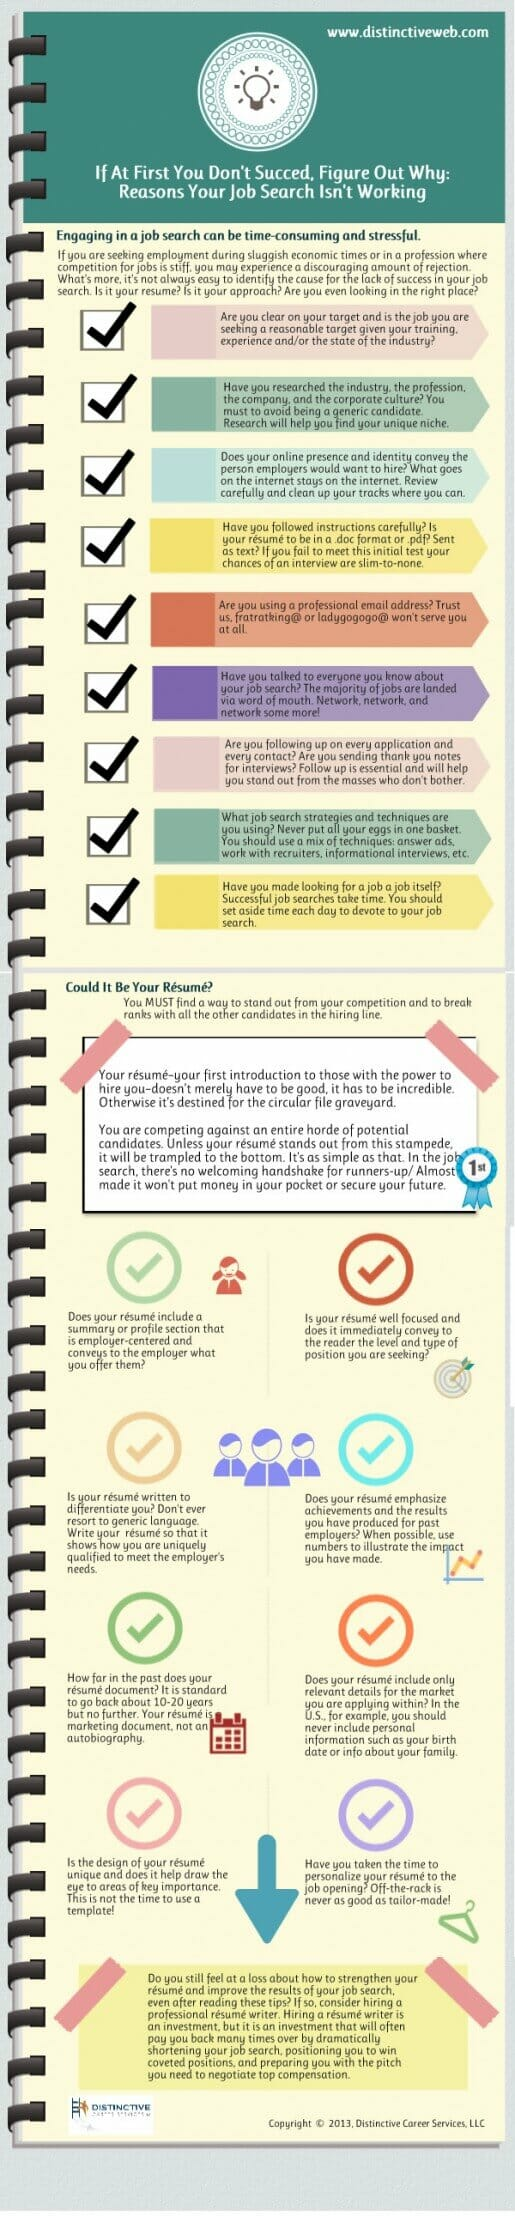 Checklist for a more effective resume and job search